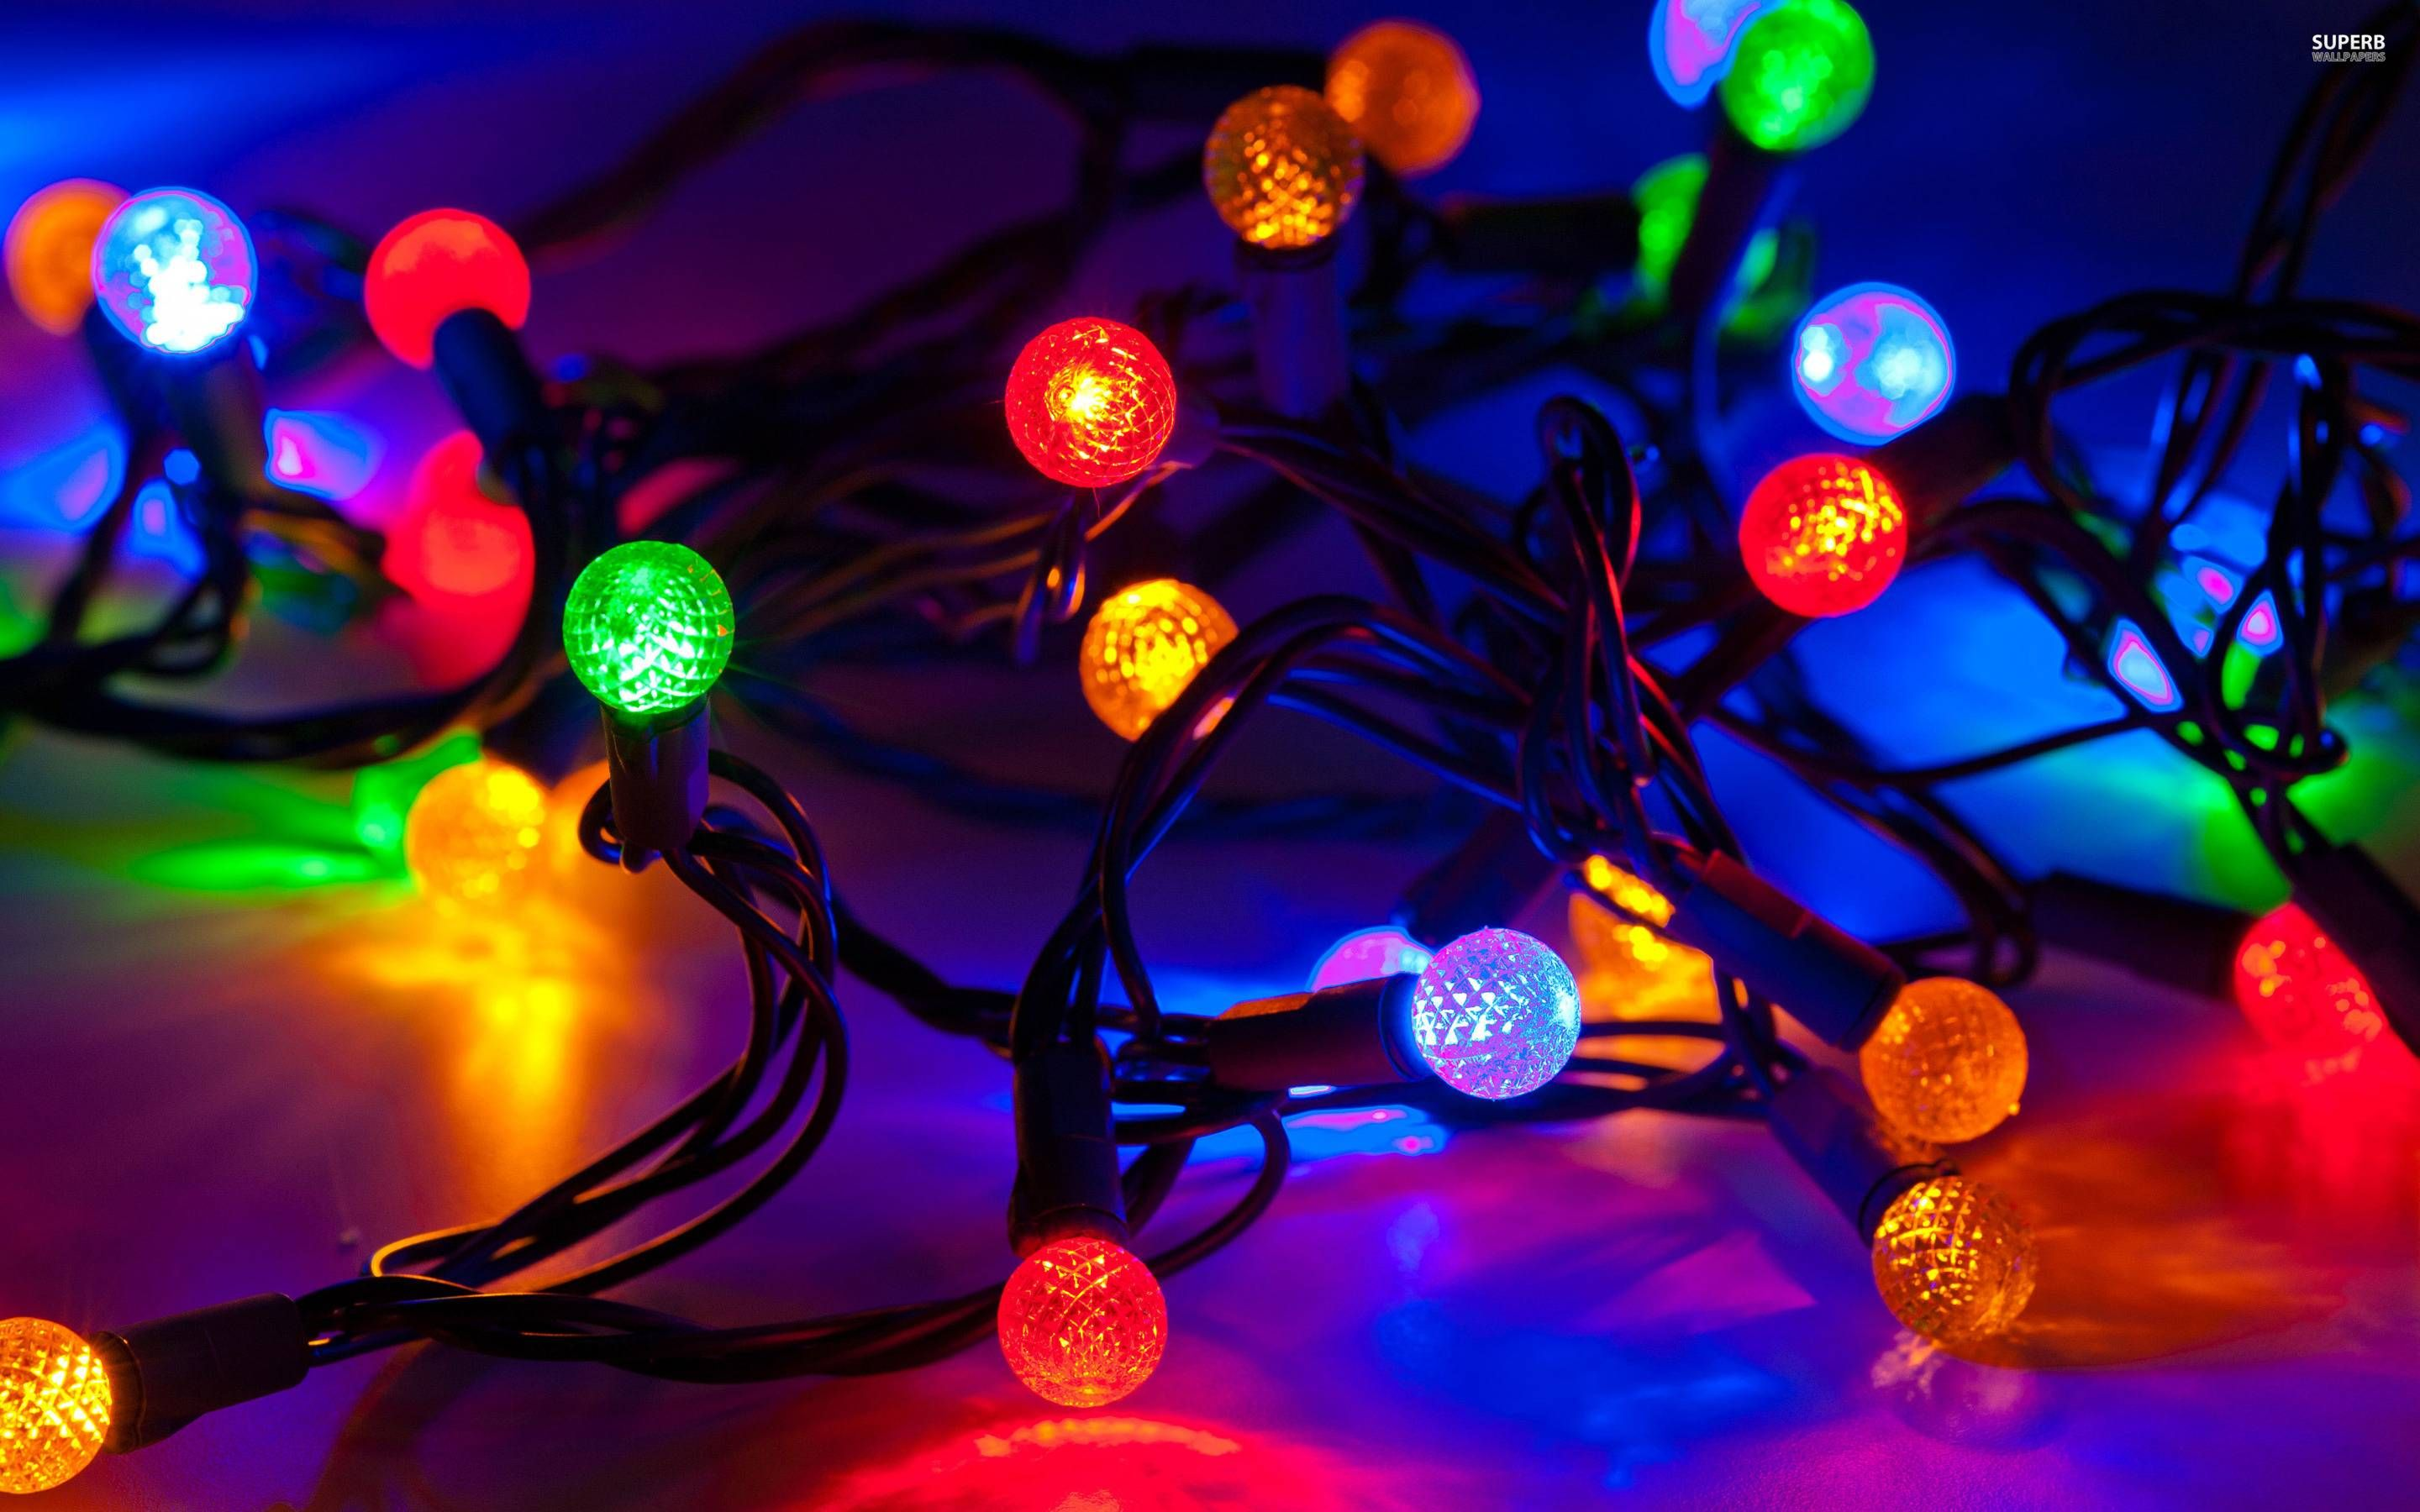 christmas lights wallpapers - wallpaper cave | adorable wallpapers